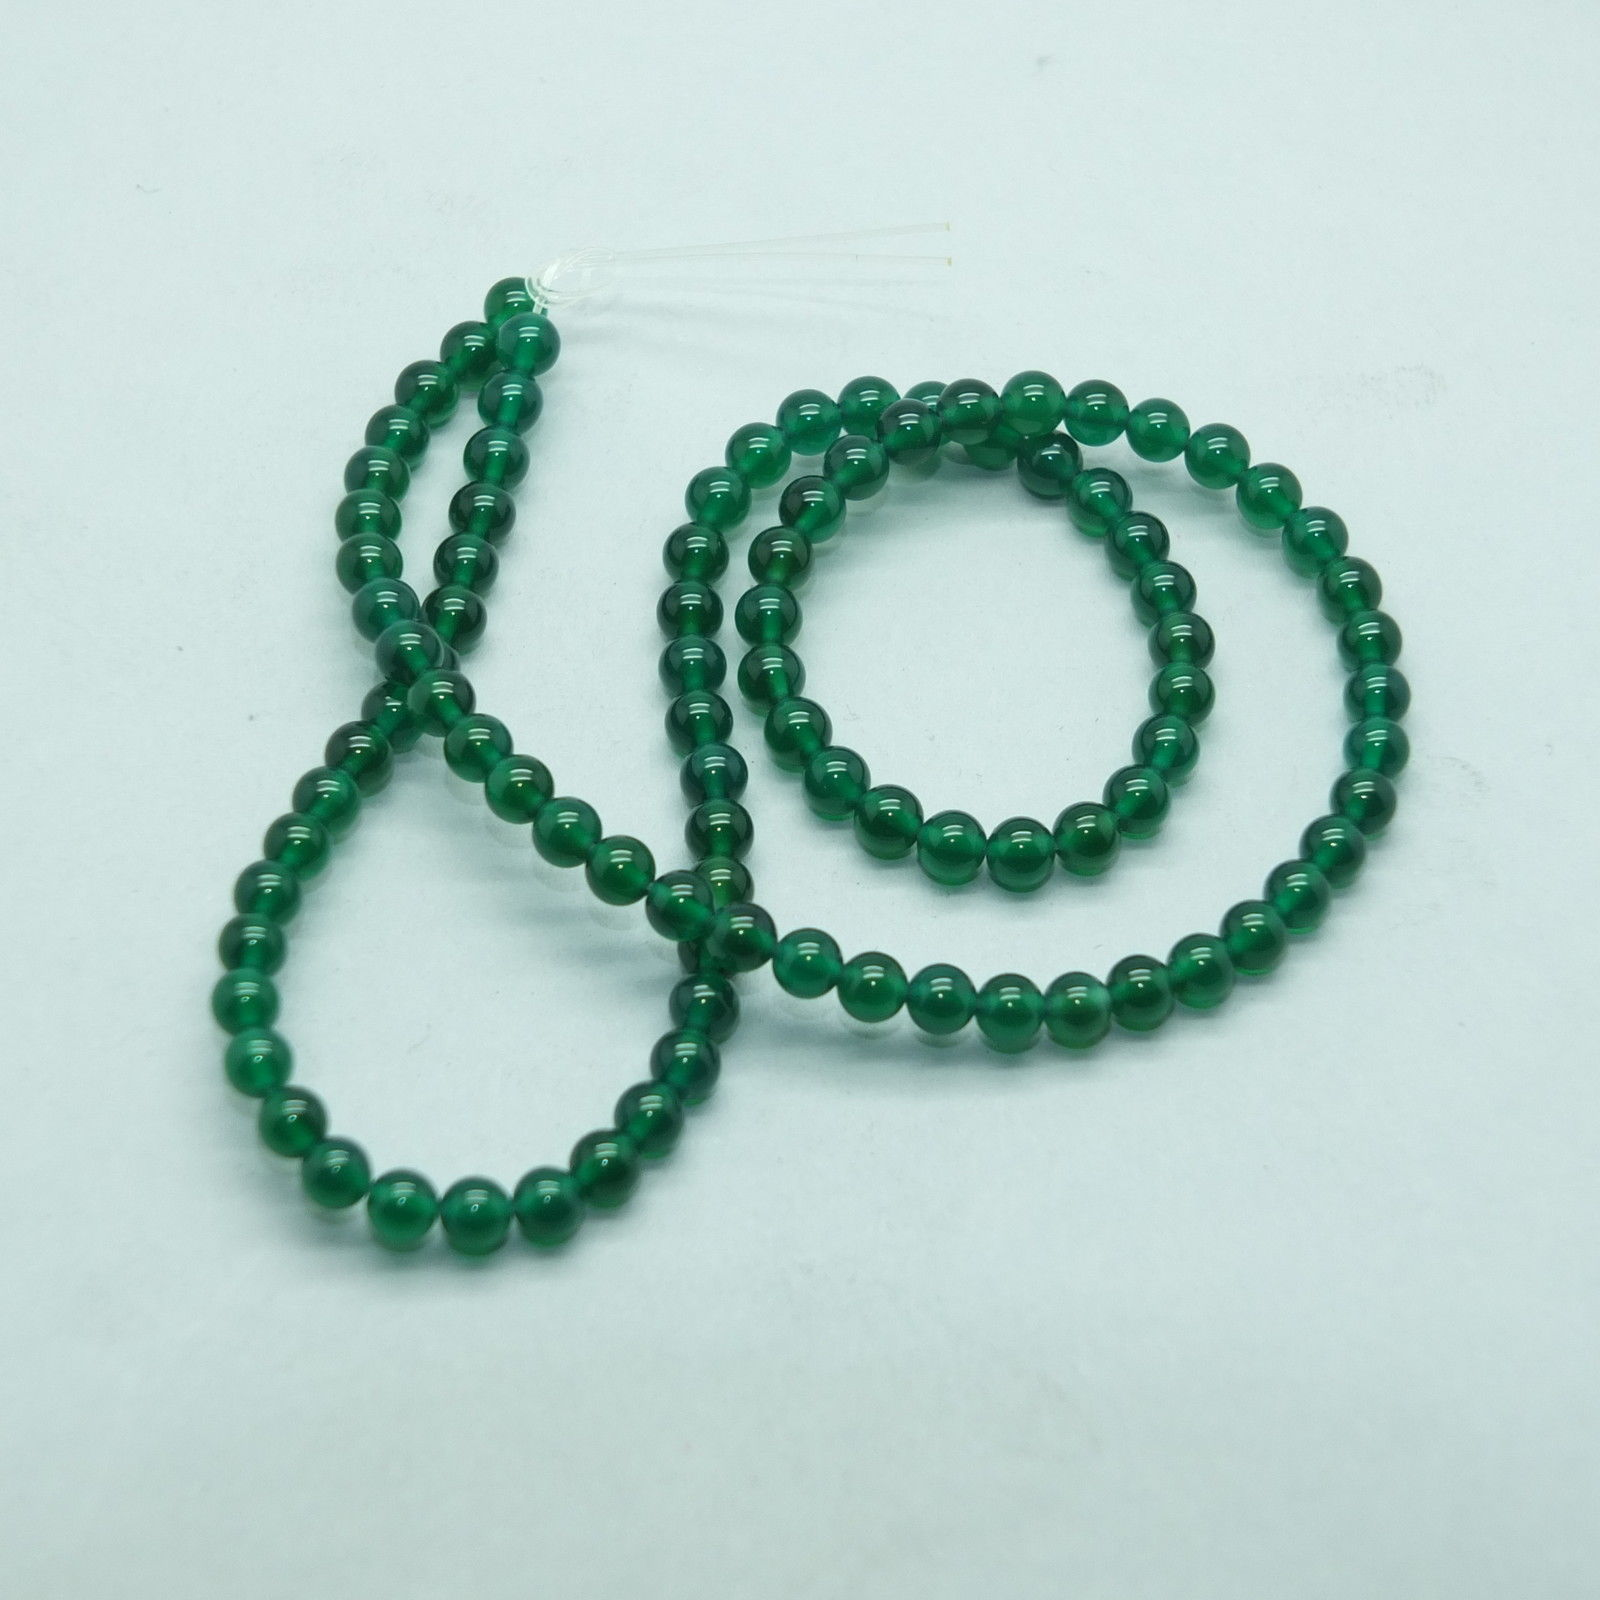 Primary image for 4mm Green Agate Semi Precious Stone Gem Beads